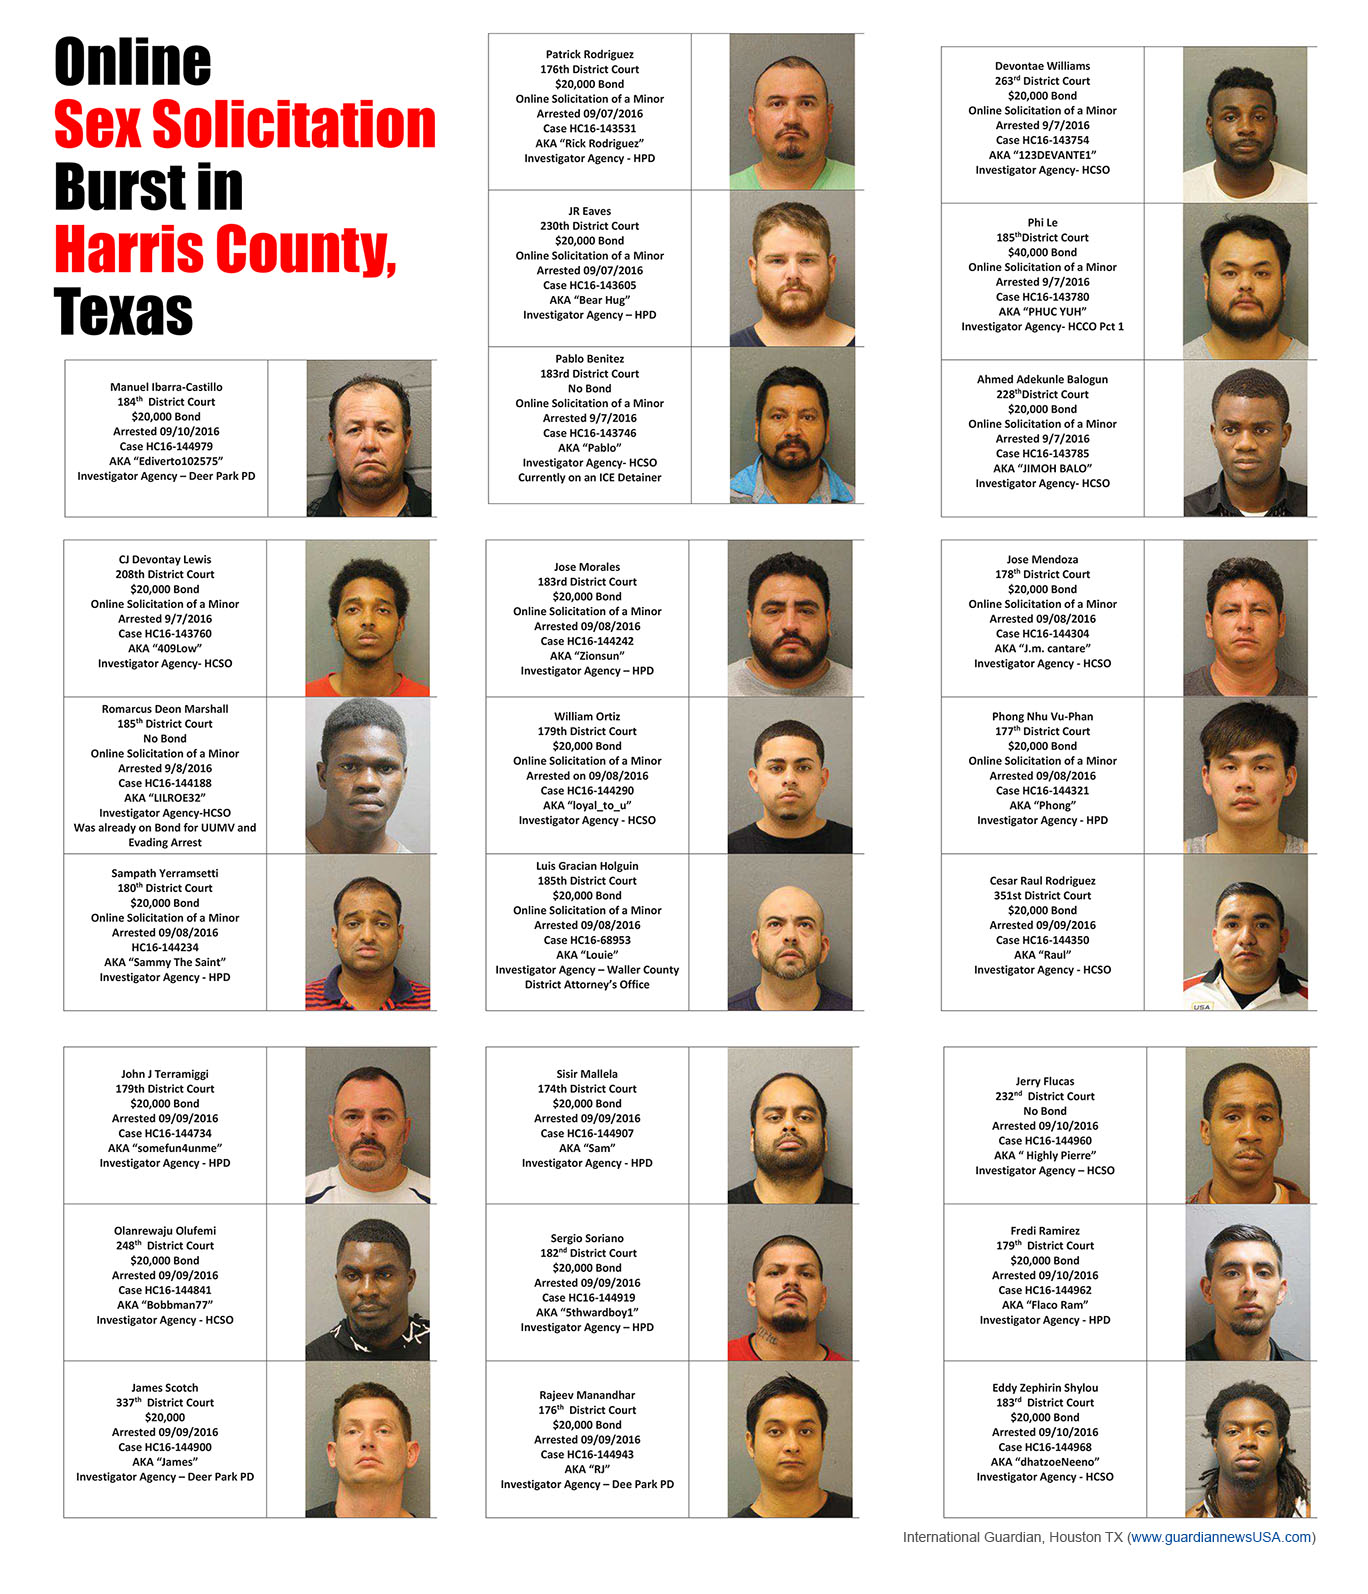 District judge 174th judicial district - Harris County Online Sex Solicitation Investigation Lands 25 Child Predators In Jail